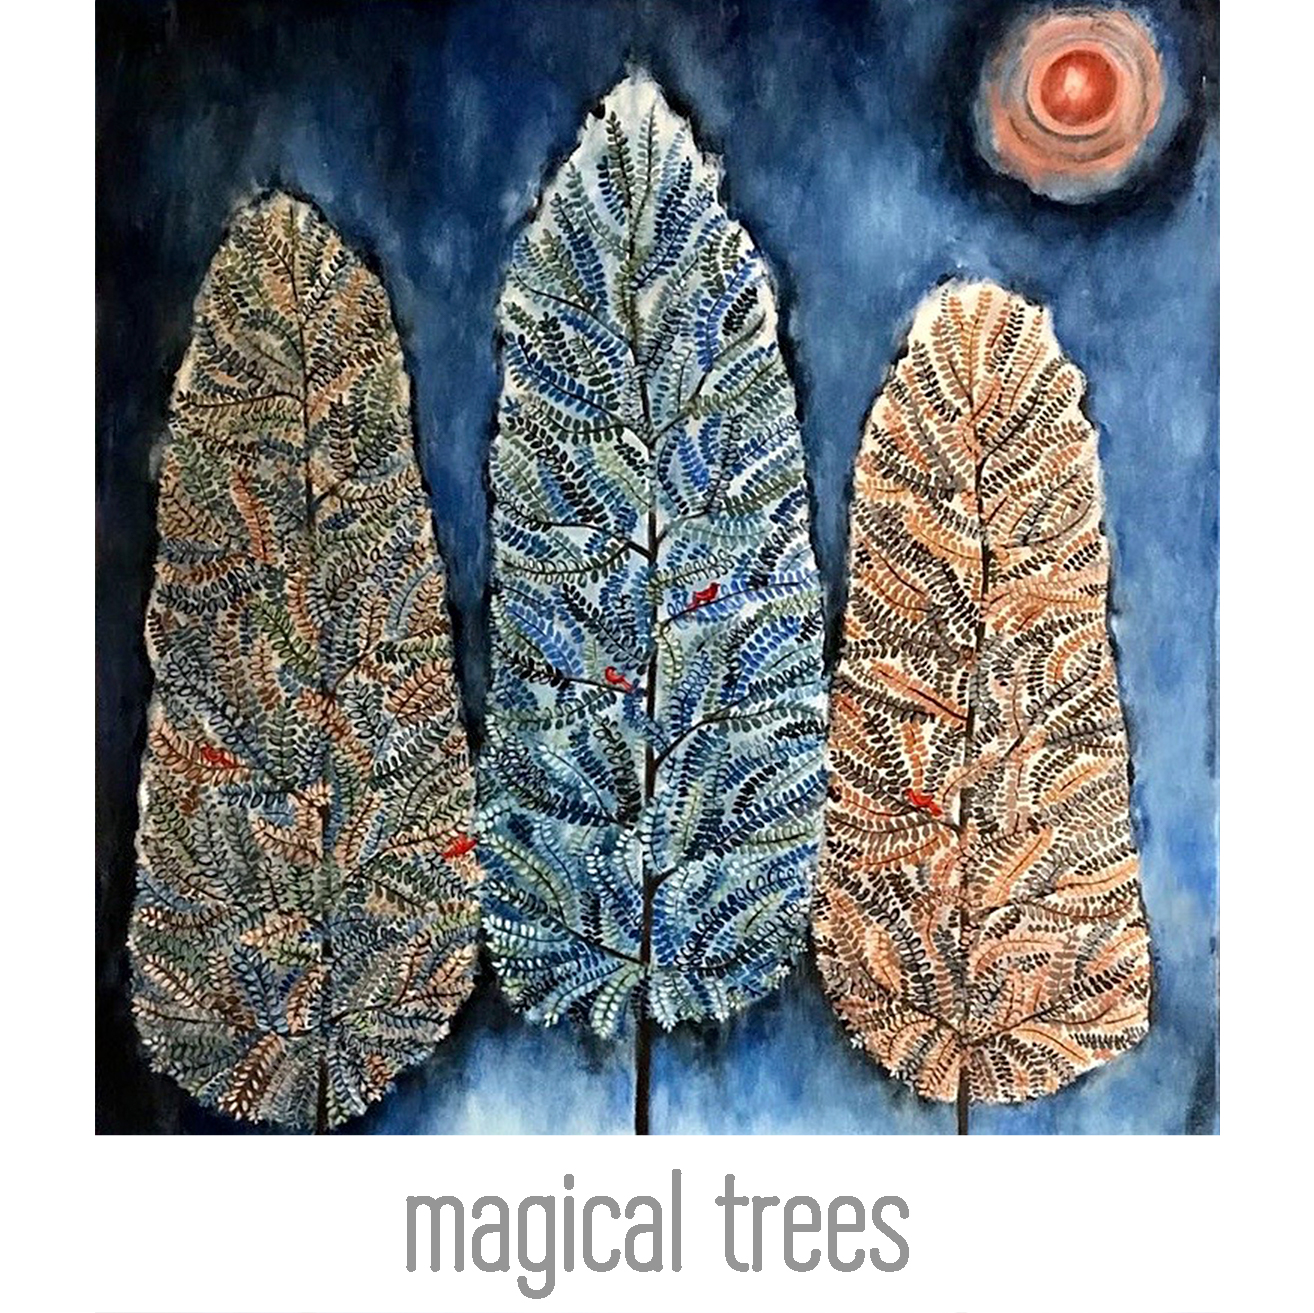 magical_trees-index.jpg